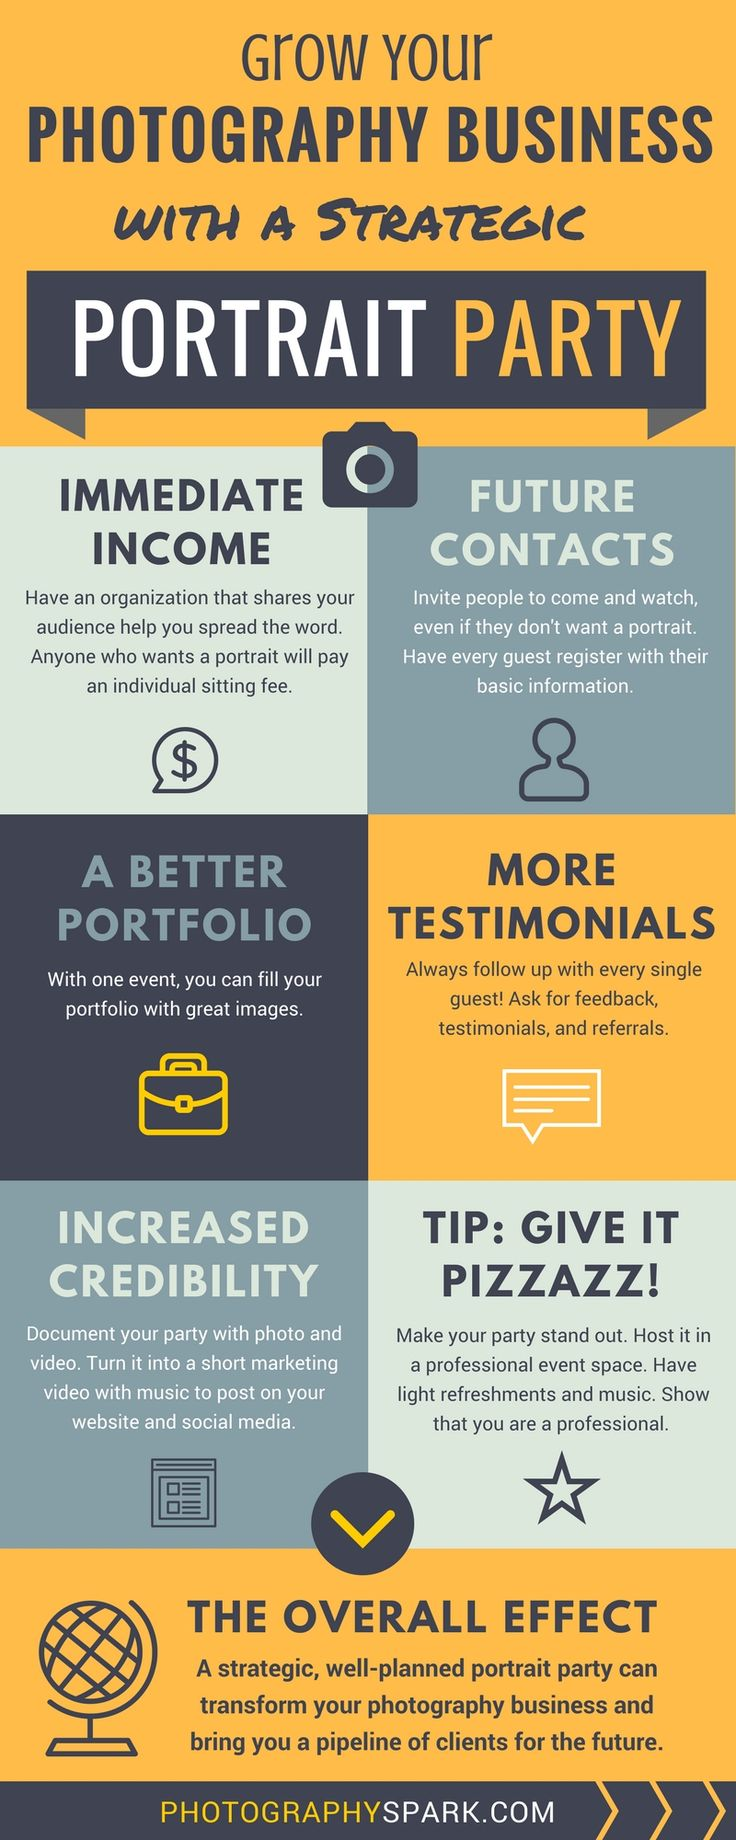 Love this infographic!! Gives you quick, practical tips on how to grow your portrait photography business with portrait parties! It focuses on how you have to be STRATEGIC about it in order to set yourself apart. http://photographyspark.com/grow-your-photography-business-with-a-strategic-portrait-party/